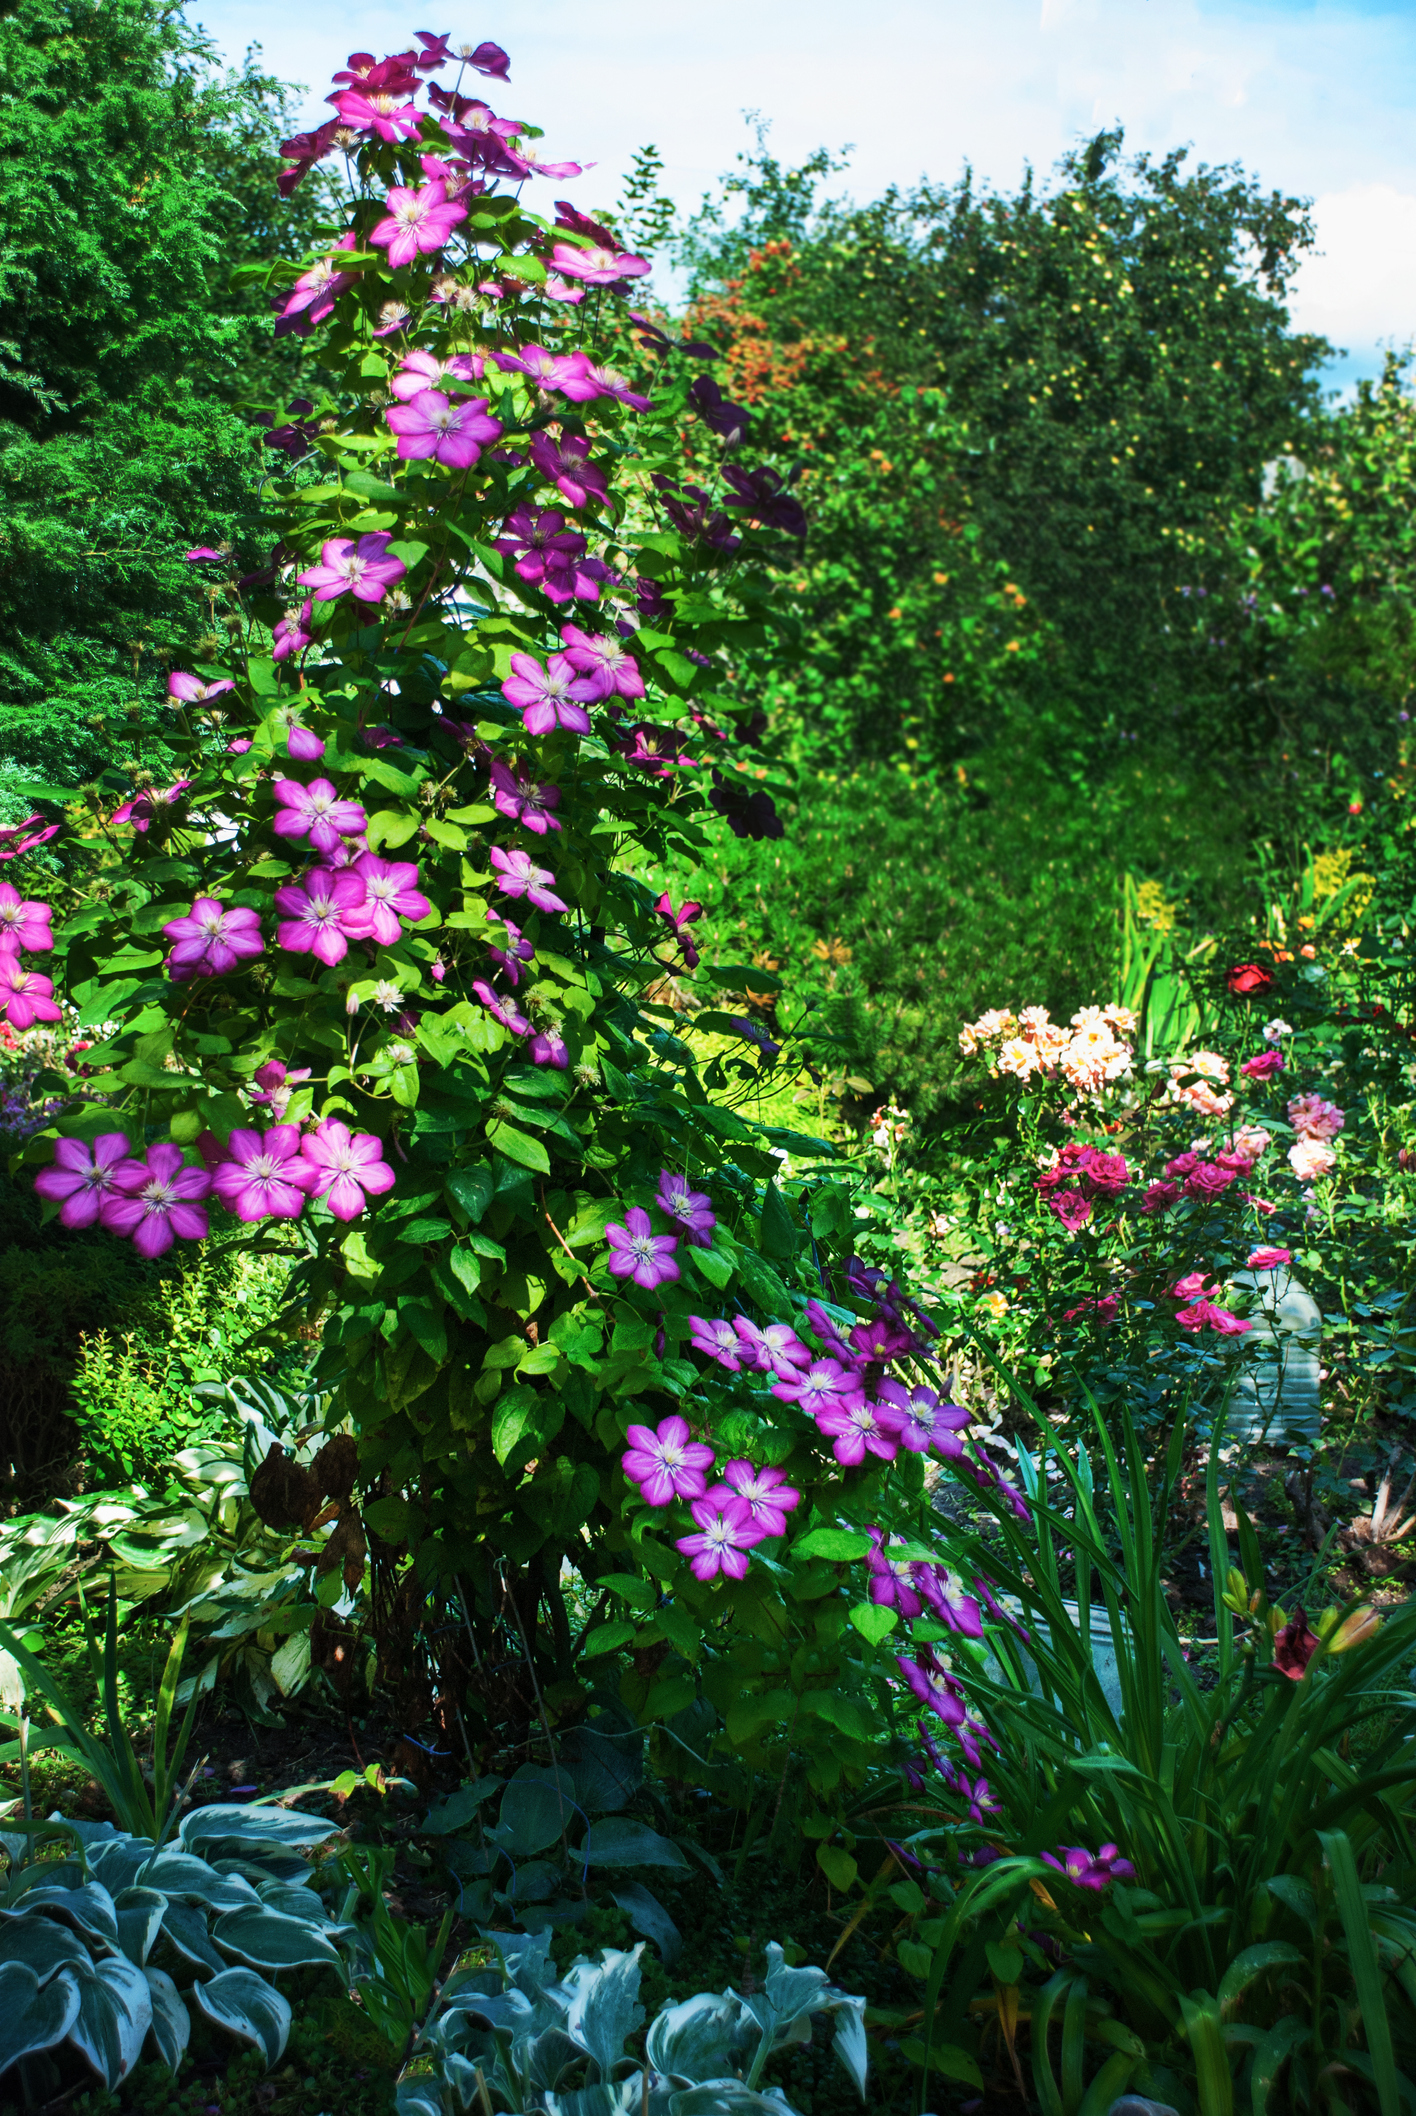 Hostas and other perennials are good protection for the roots of clematis.